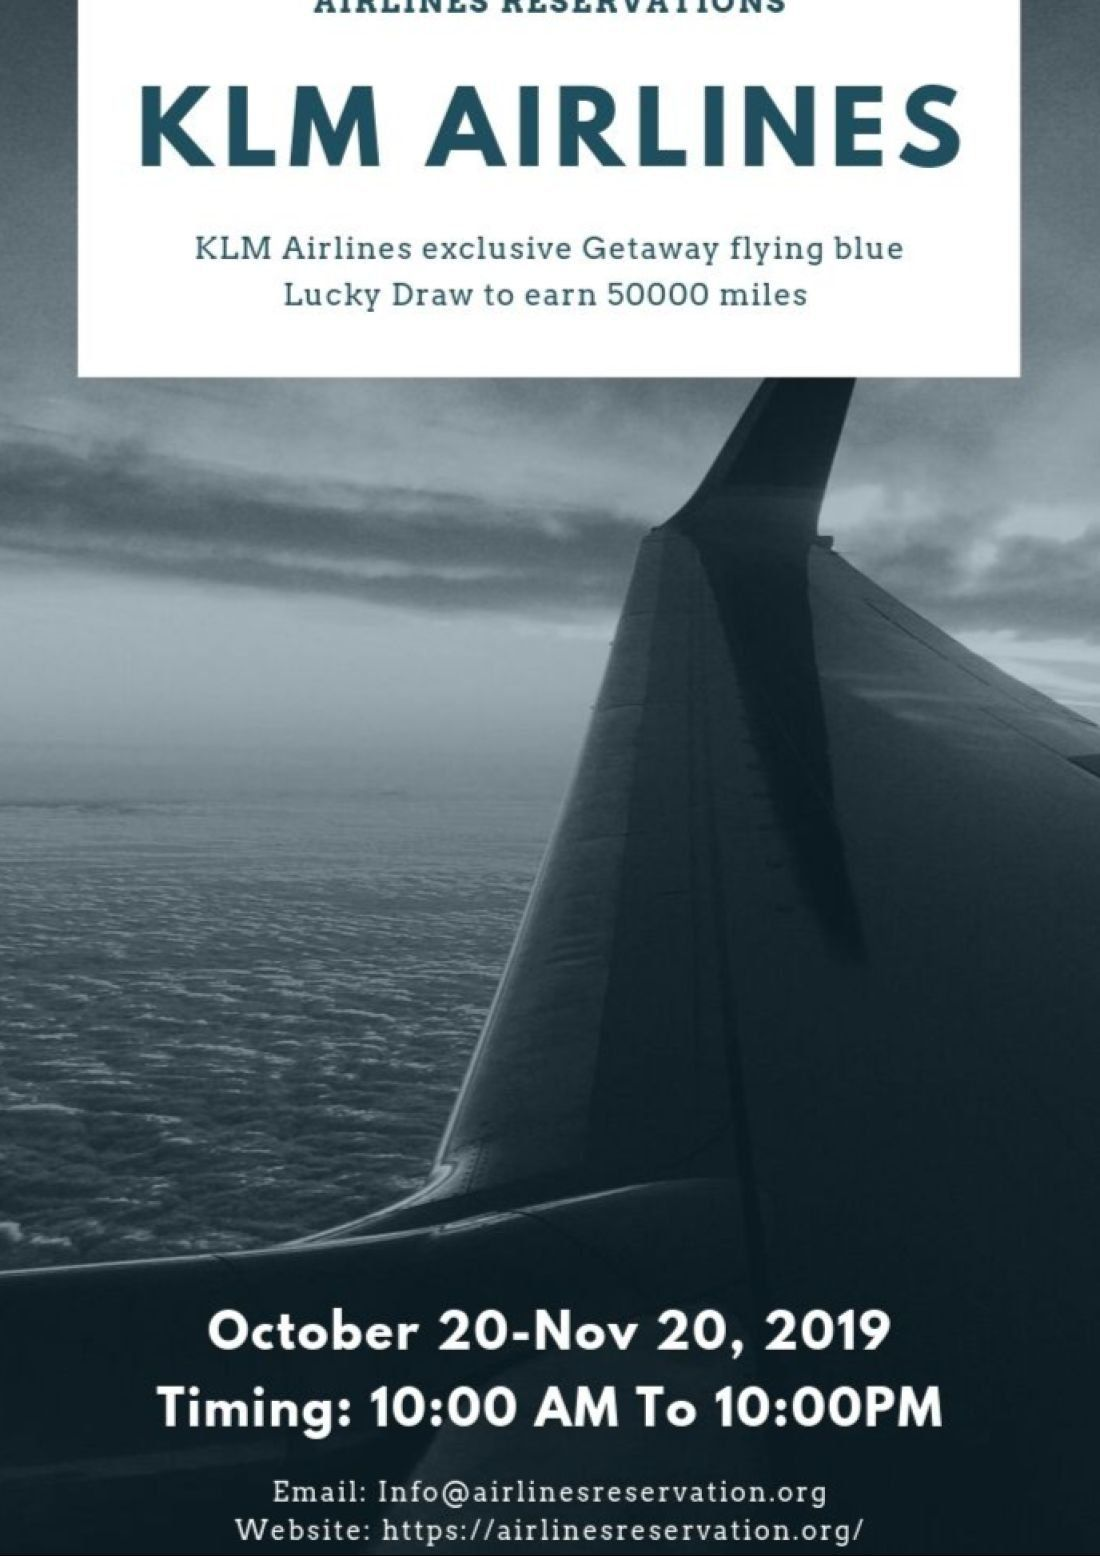 KLM Airlines exclusive Getaway flying blue Lucky Draw to earn 50000 miles